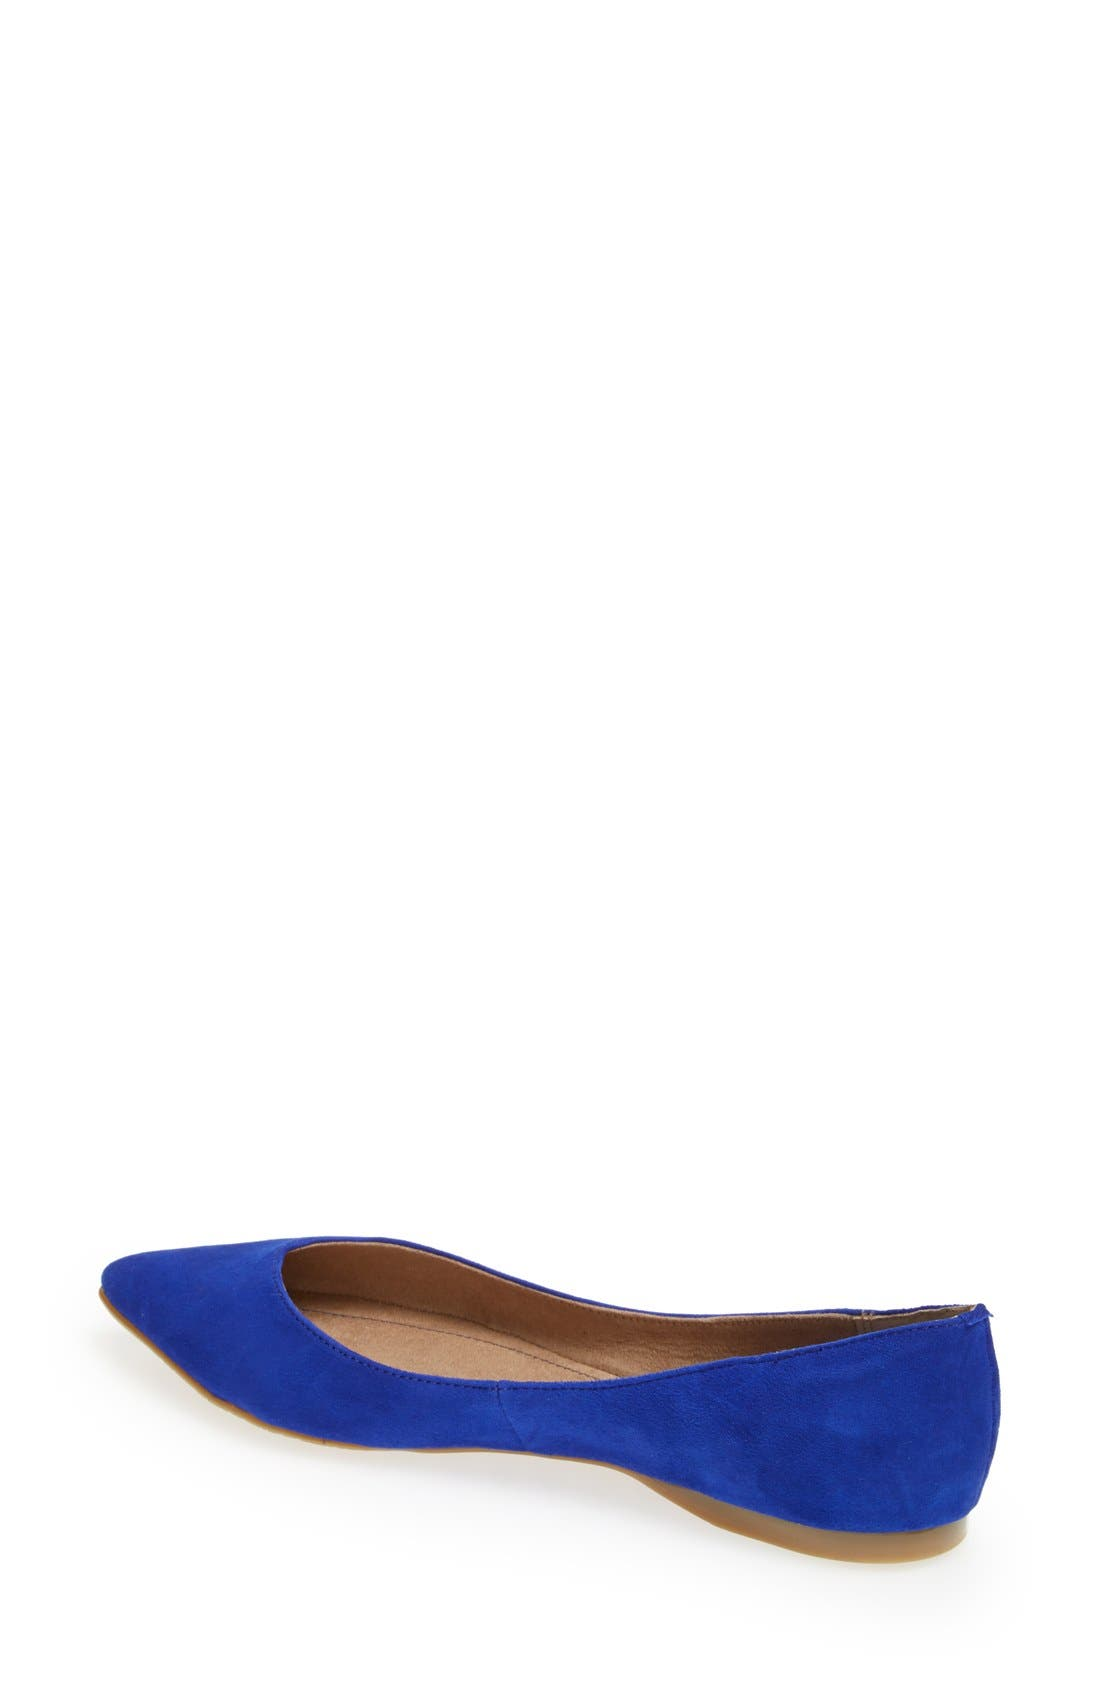 Alternate Image 2  - BP. 'Moveover' Pointy Toe Leather Flat (Women)